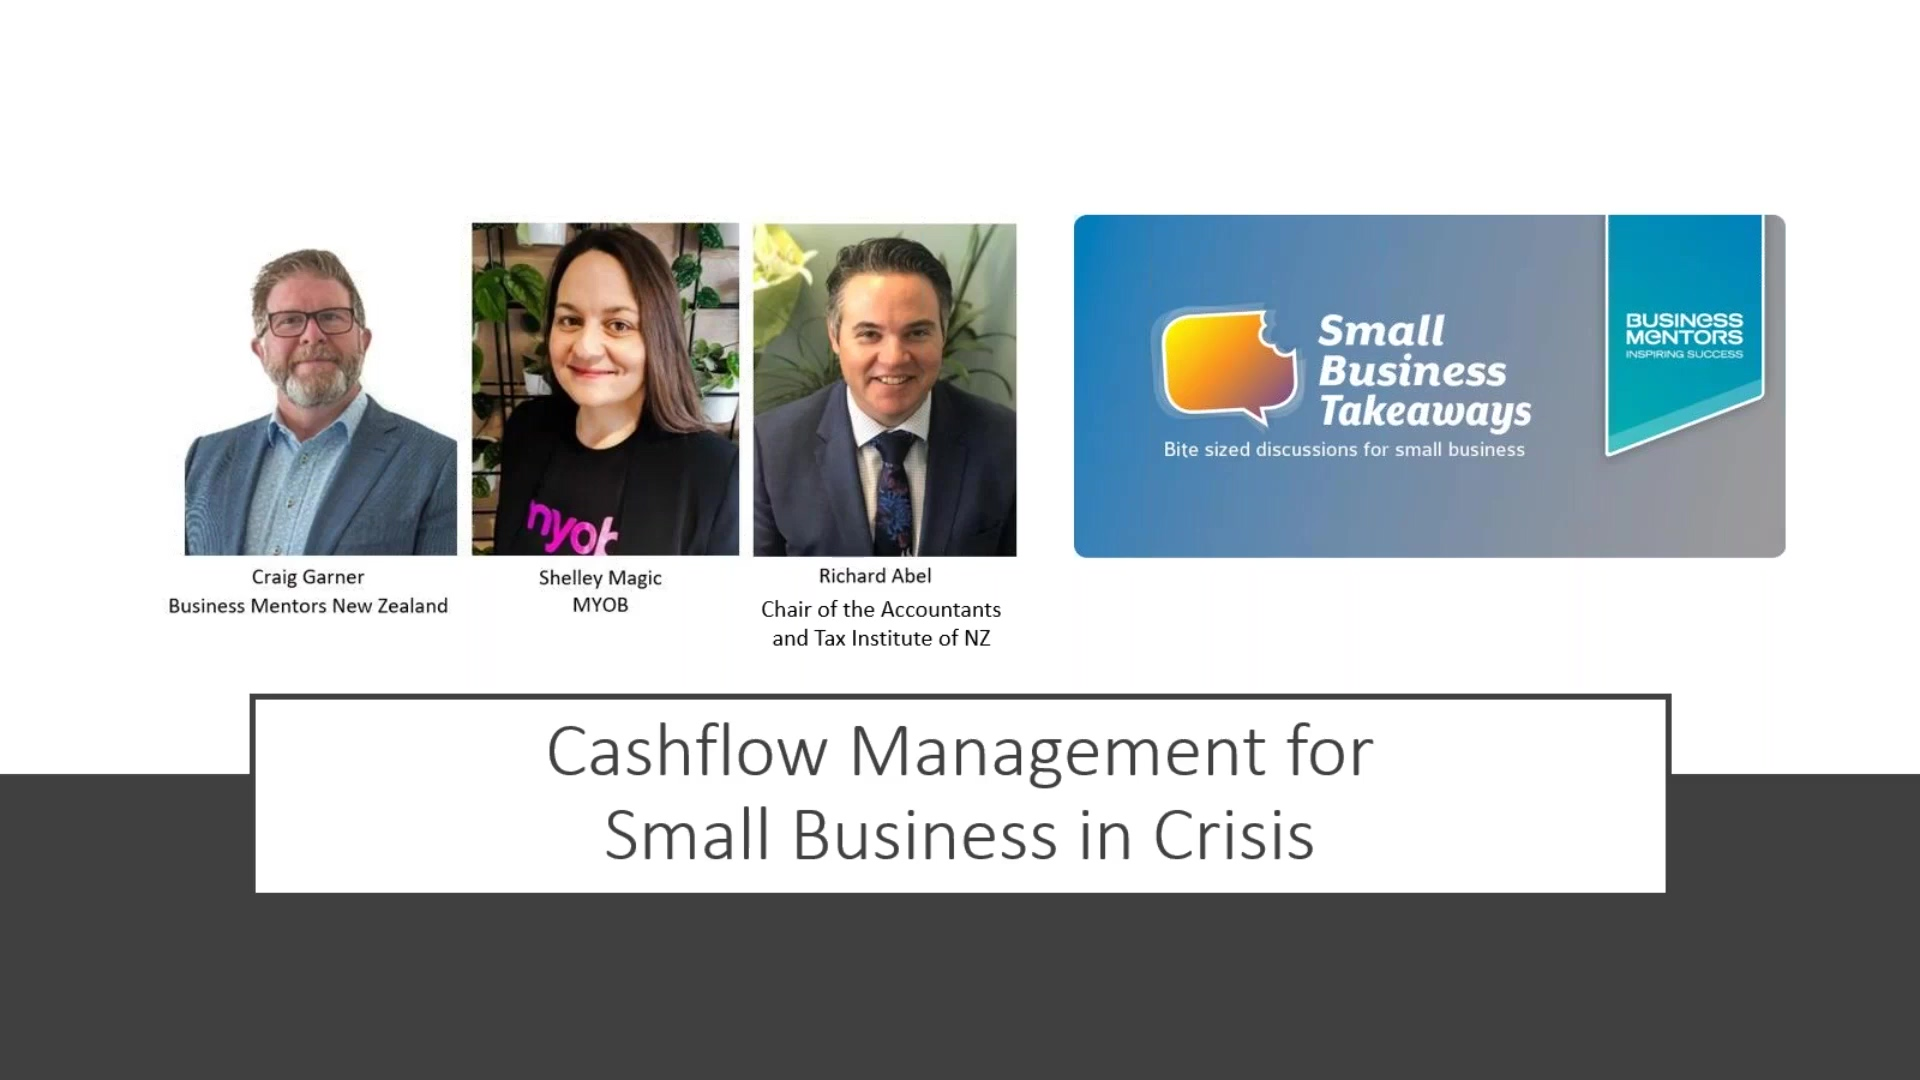 Business Mentors New Zealand_ Cashflow Management for Small Business in Crisis